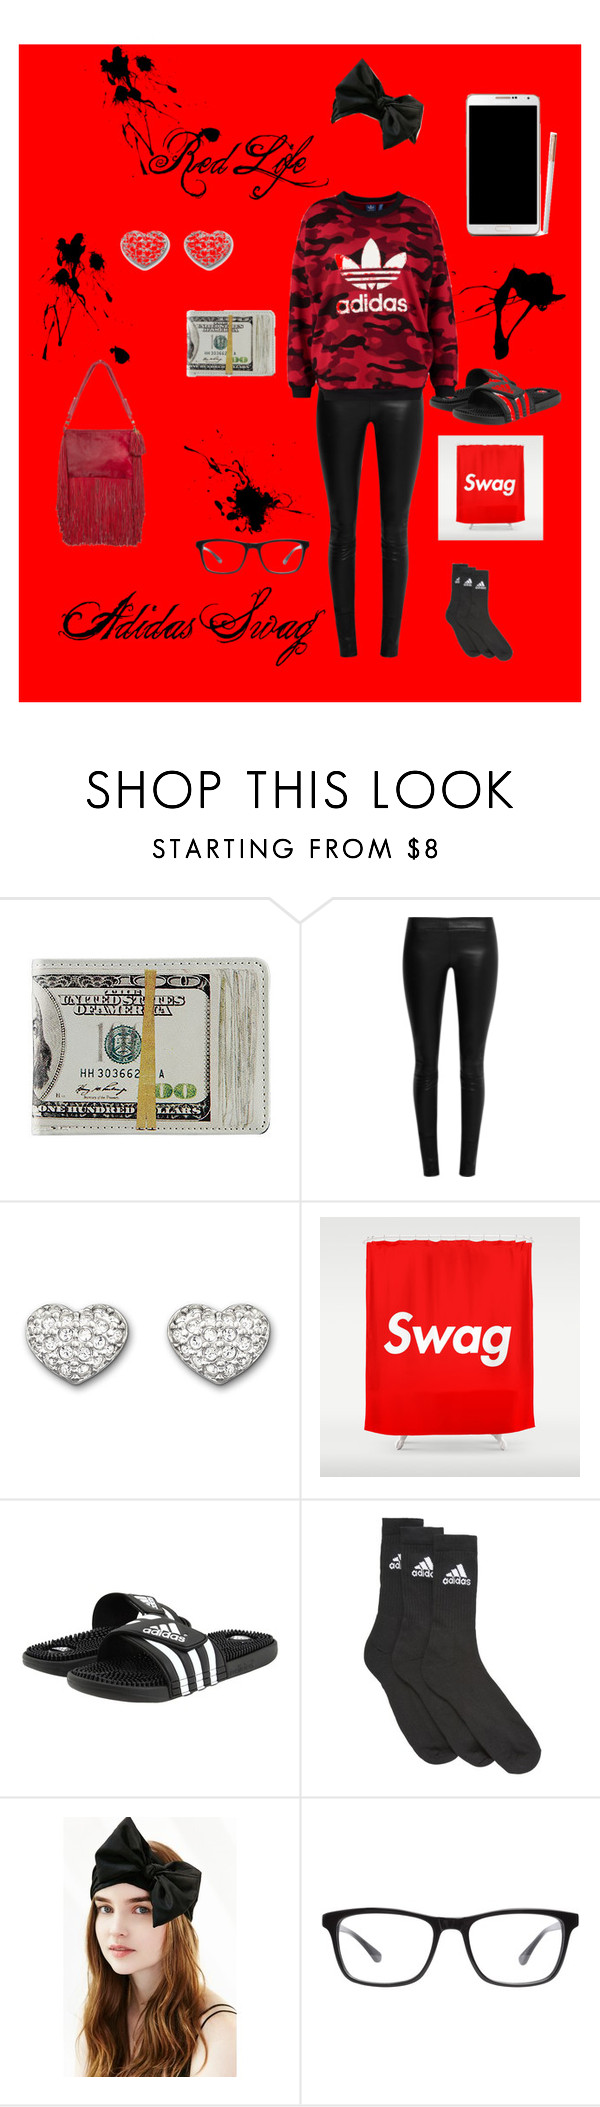 """""""Shush i look better"""" by x-keekee-x on Polyvore featuring The Row, Swarovski, Samsung, adidas, Joseph Marc, adidas Originals, women's clothing, women, female and woman"""